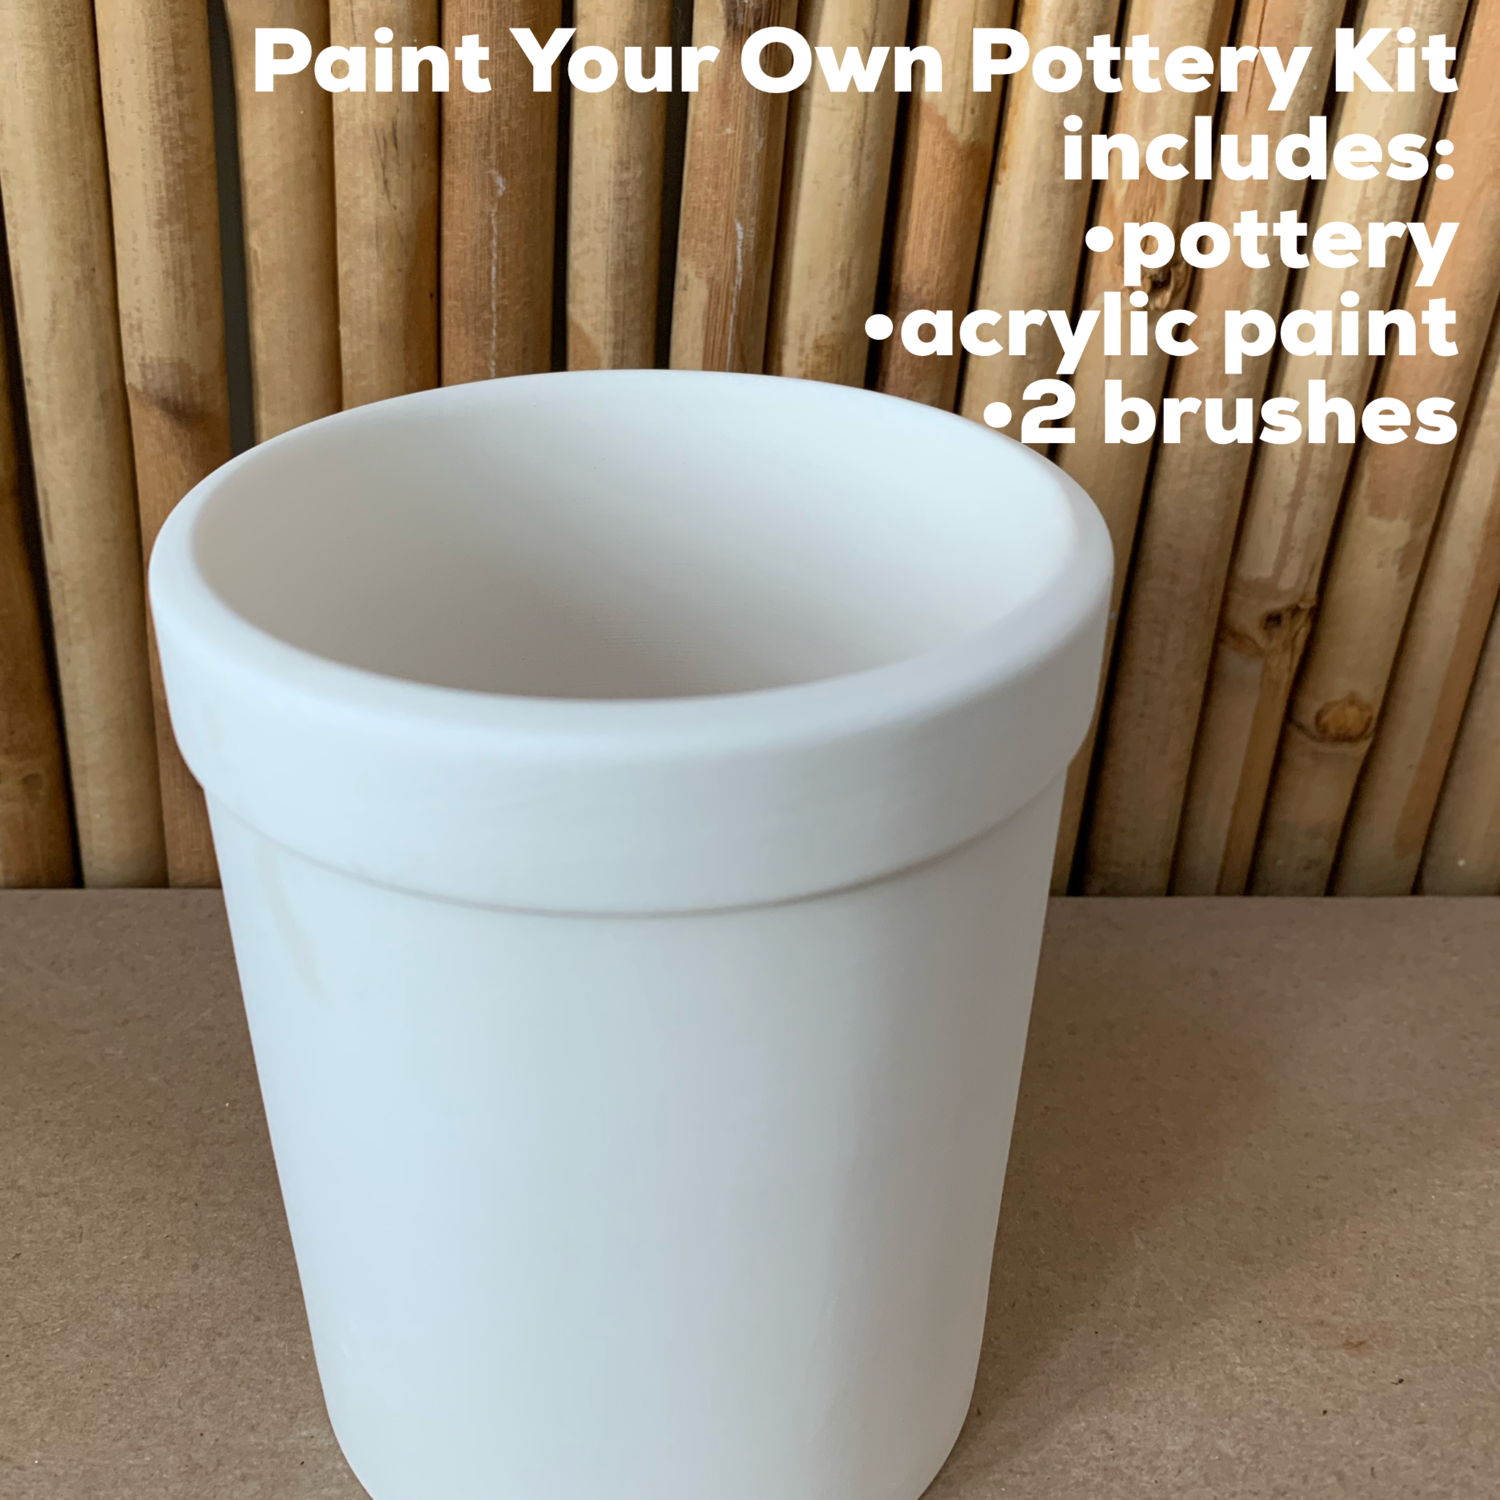 NO FIRE Paint Your Own Pottery Kit -  Ceramic Pencil Holder Acrylic Painting Kit